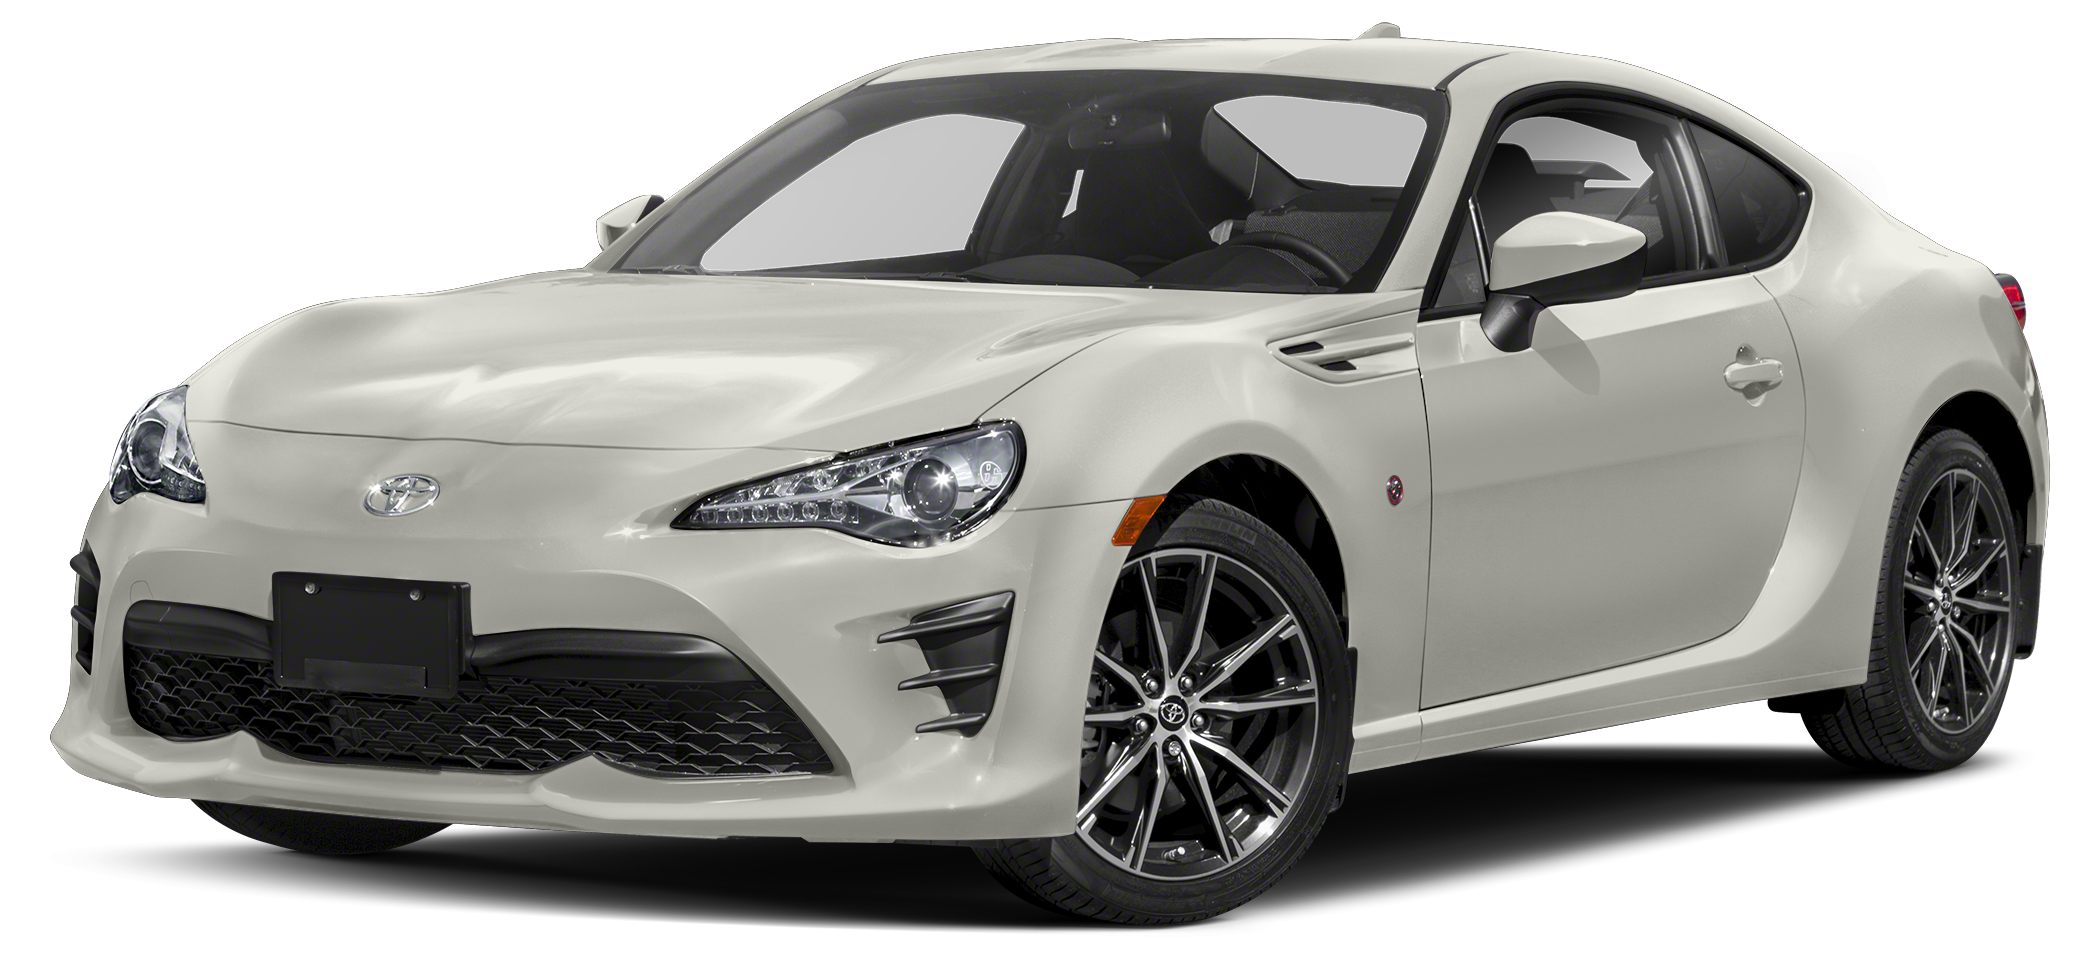 2017 Toyota 86 860 Special Edition Heated Leather Seats Dual Zone AC Alloy Wheels Back-Up Came